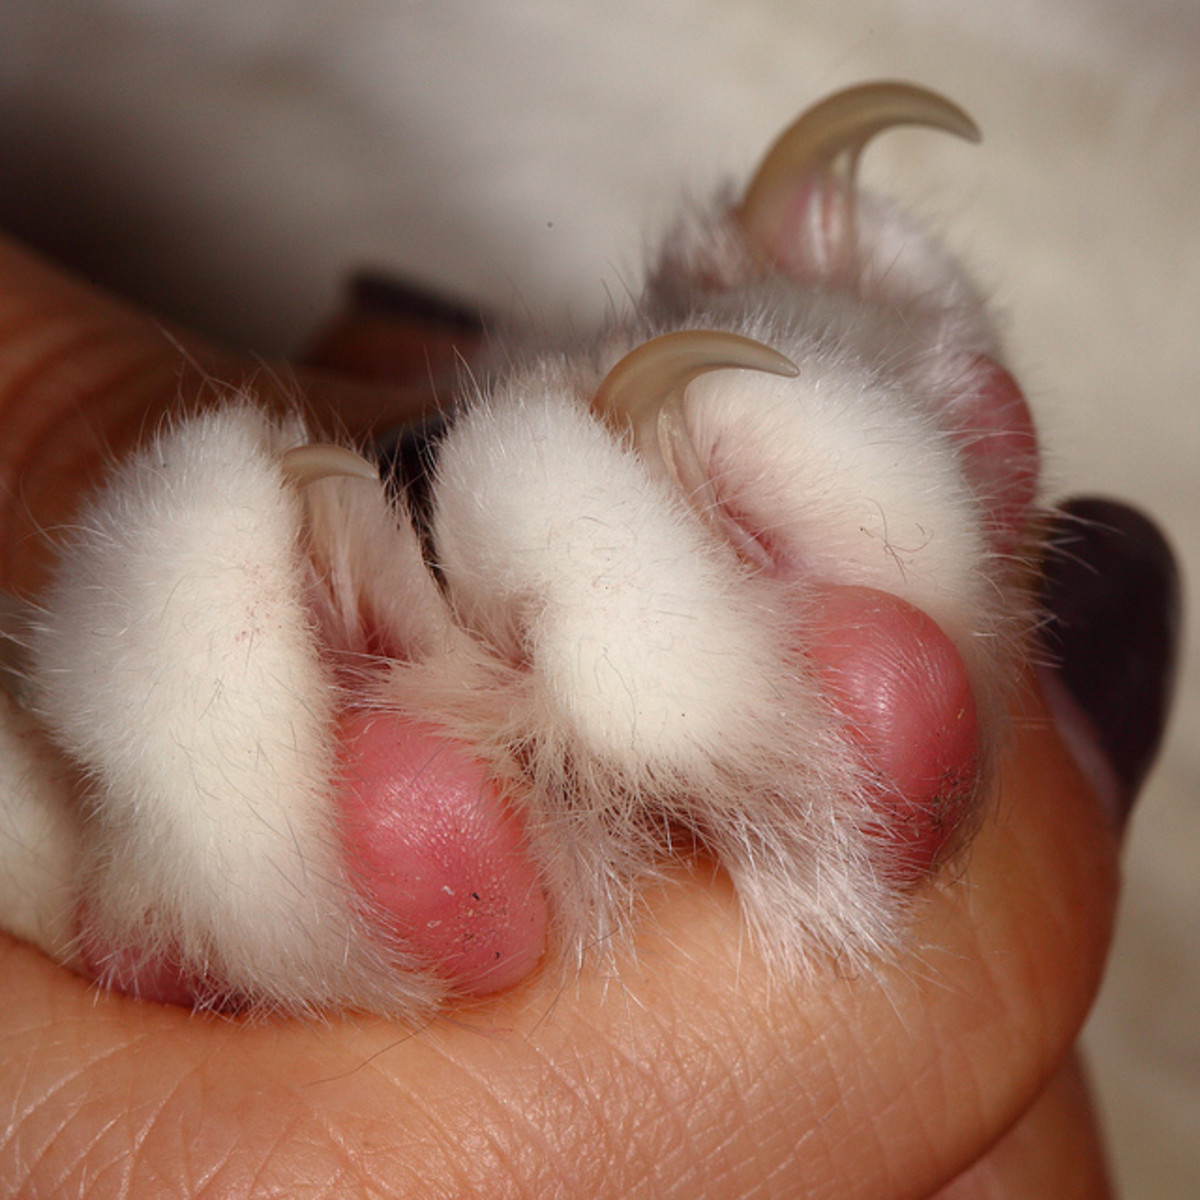 Learn to trim kitty's claws. Firm, but gently pressure on the paw will cause the claws to extend so they can be trimmed.